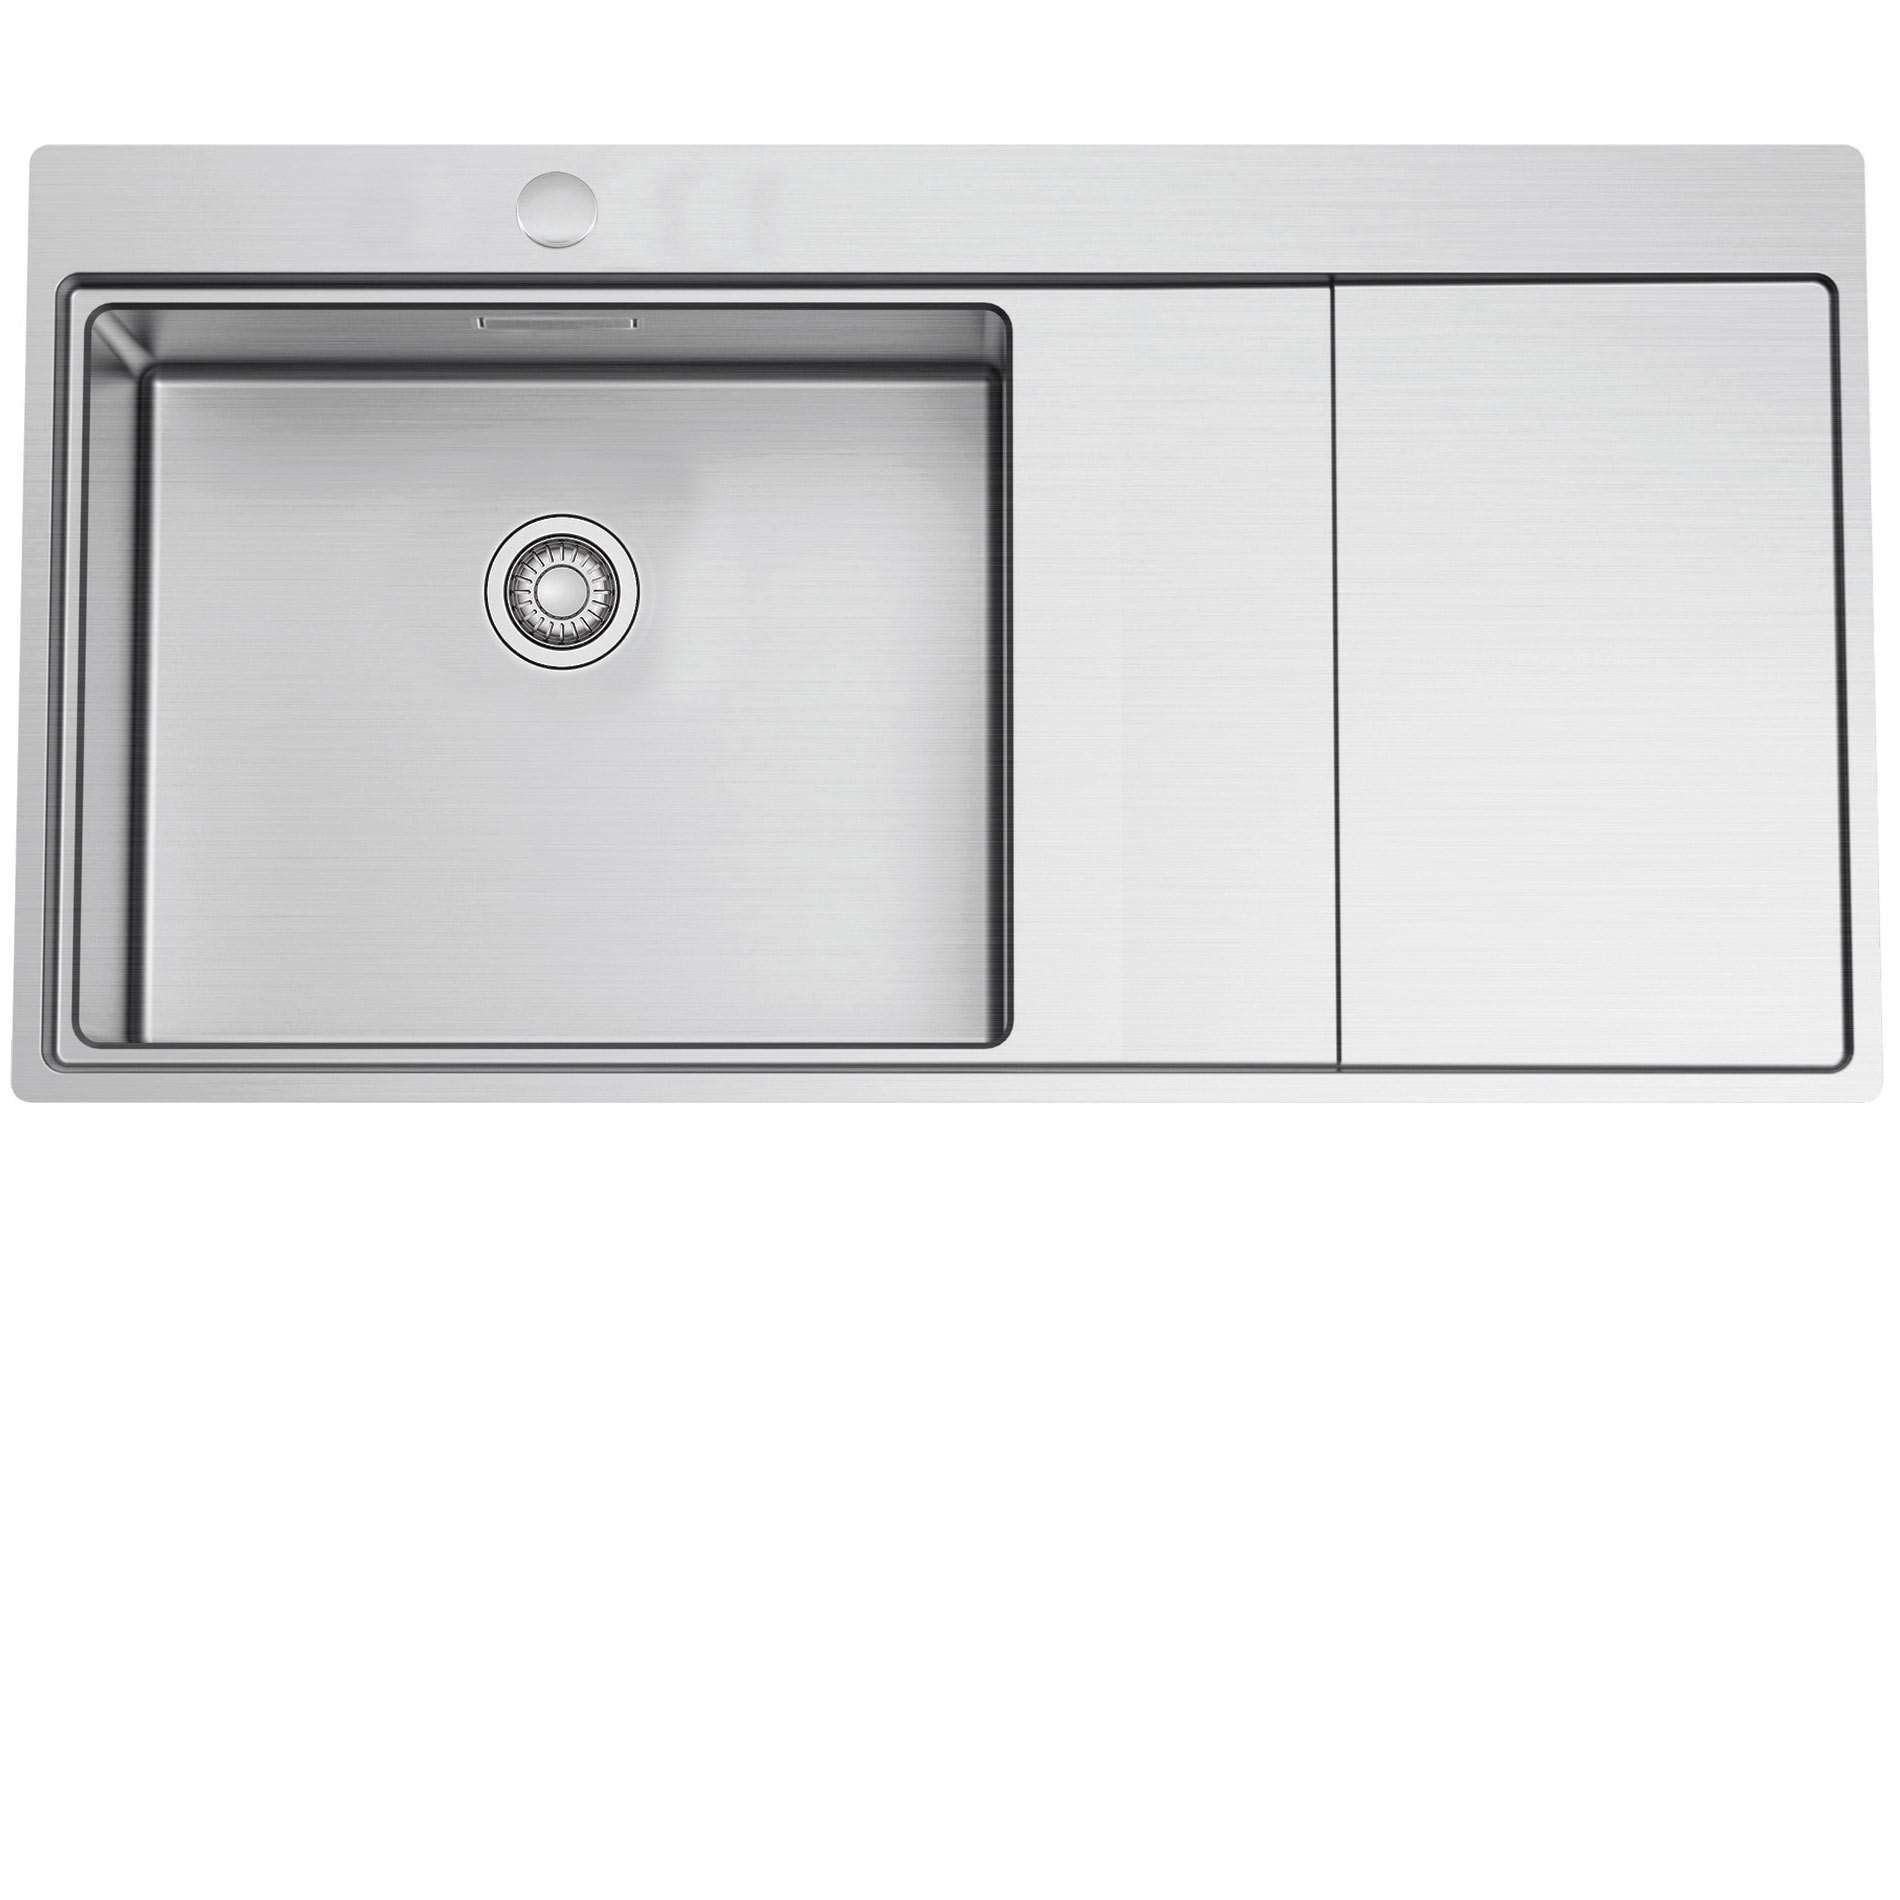 clearwater xeron 105 large single bowl stainless steel sink